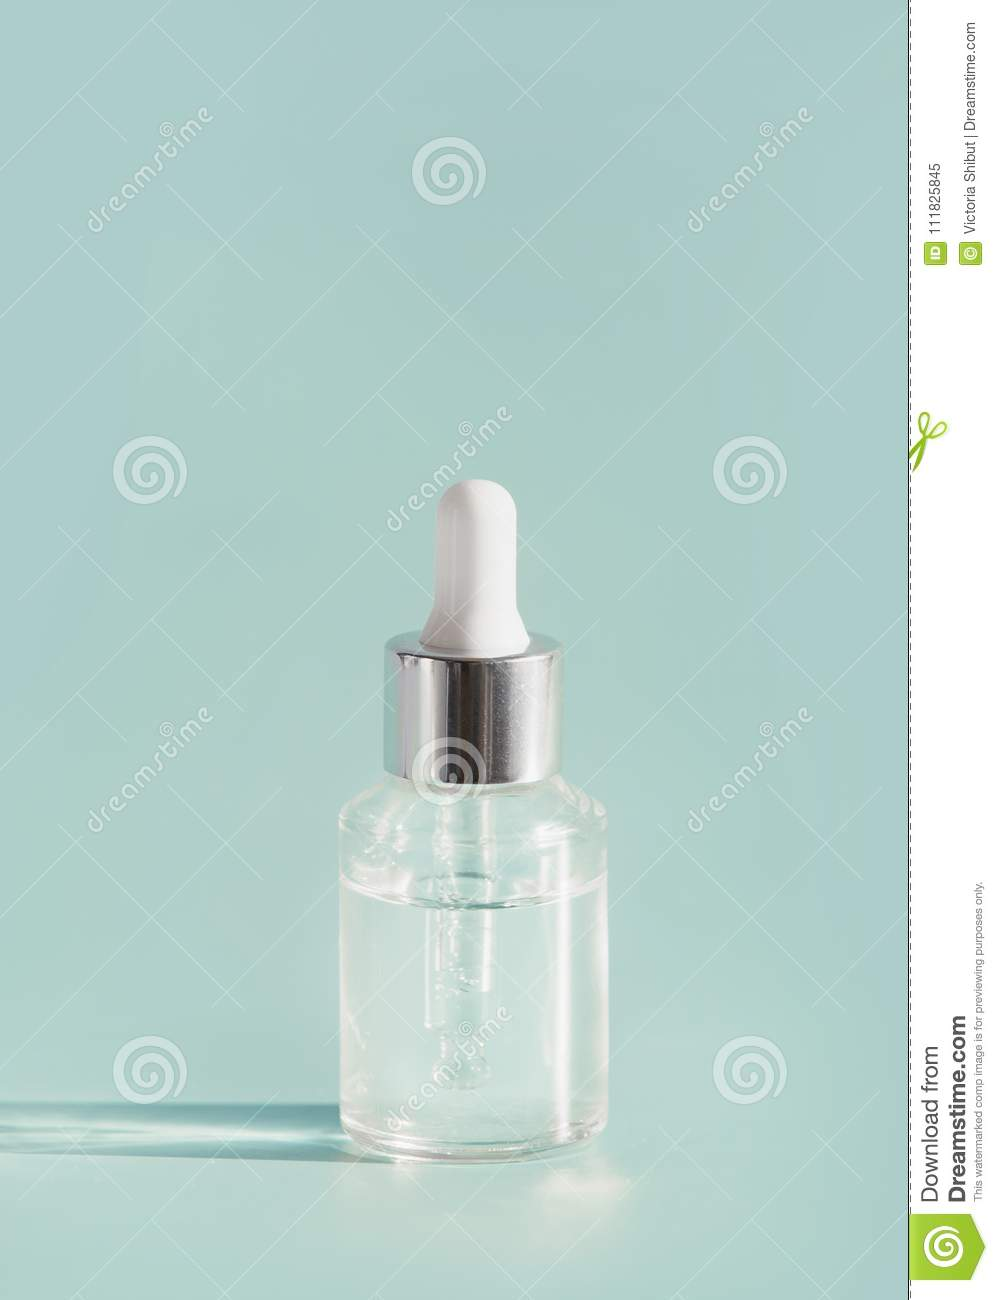 Cosmetic transparent liquid in glass bottle with dropper. Serum skin care product on light mint background, front view with copy s